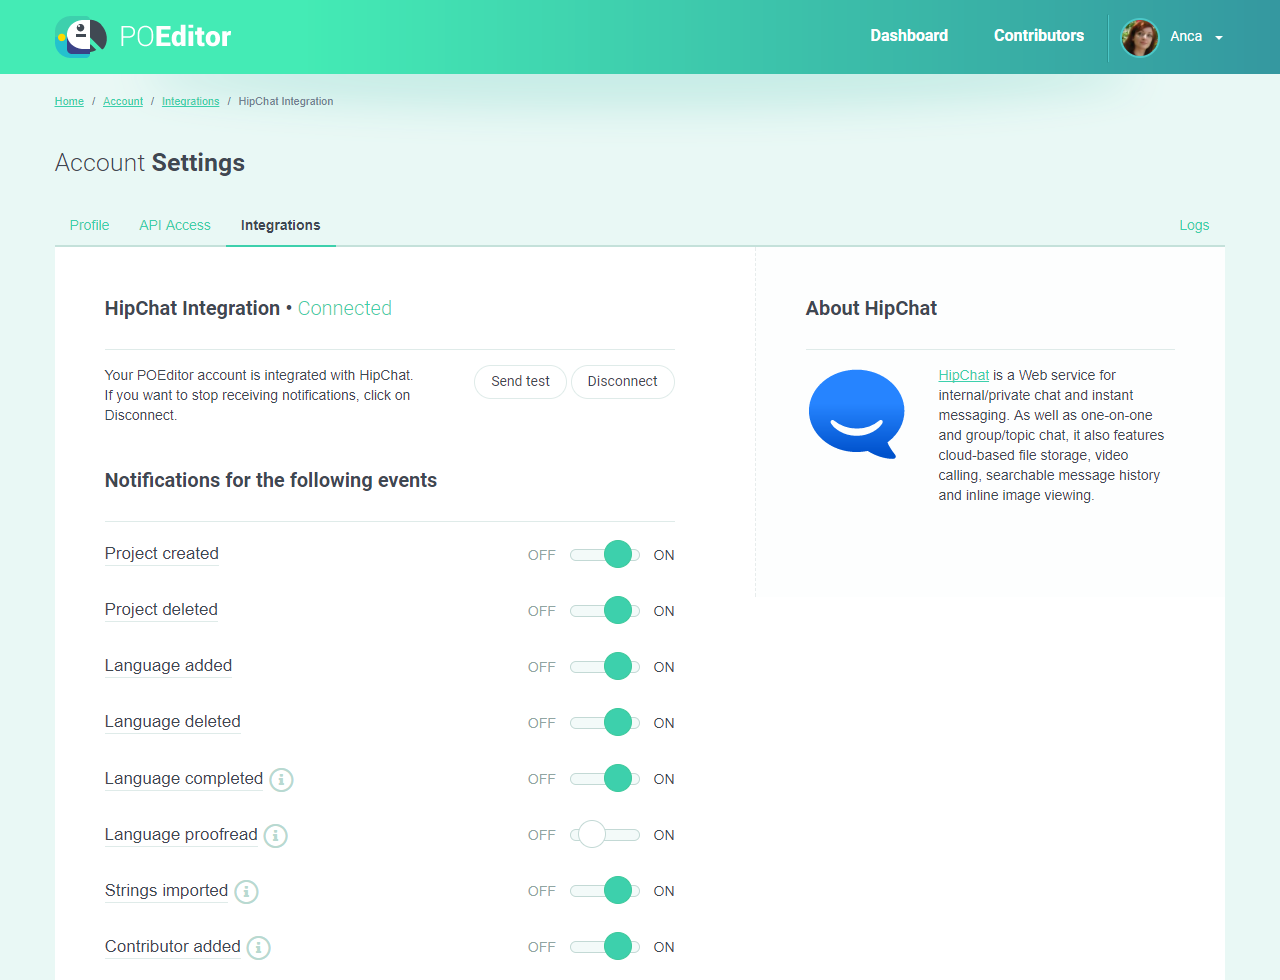 HipChat Integration Page - POEditor localization tool